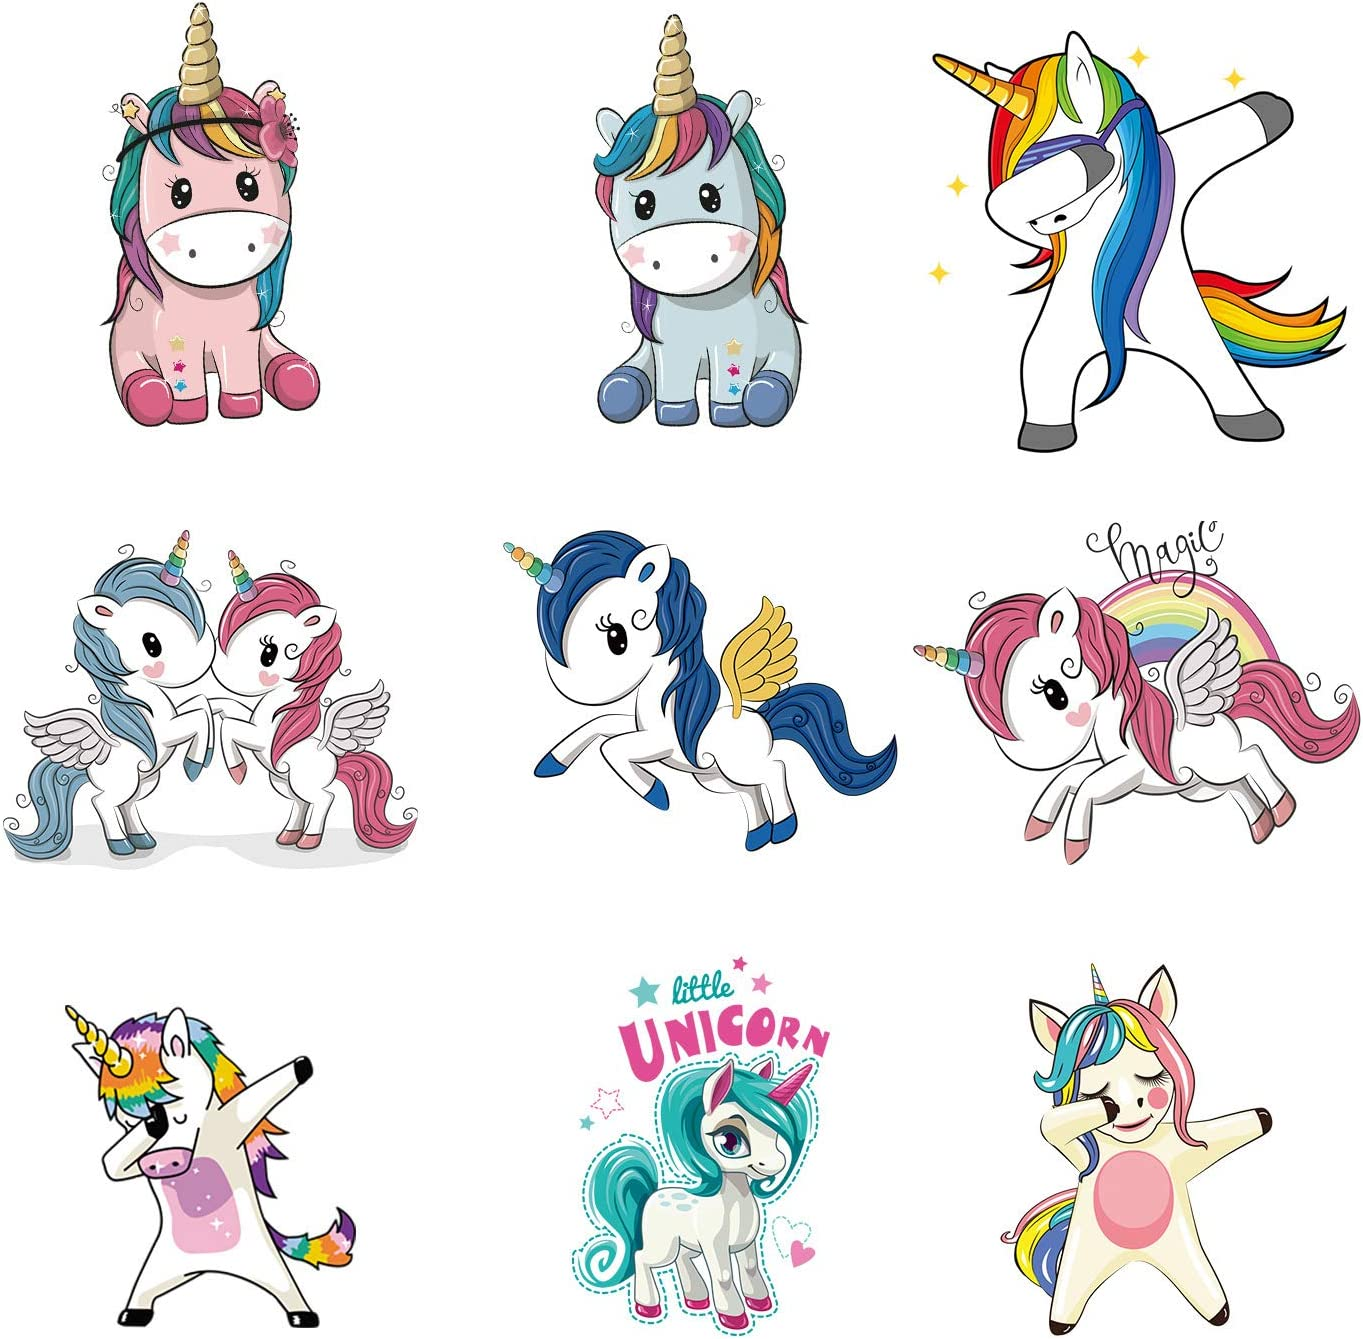 Amazon Com Aot Cartoon Unicorn Iron On Patches For Clothes Kids Heat Transfer Stickers T Shirts Diy Decor Animal Appliques A Level Washable